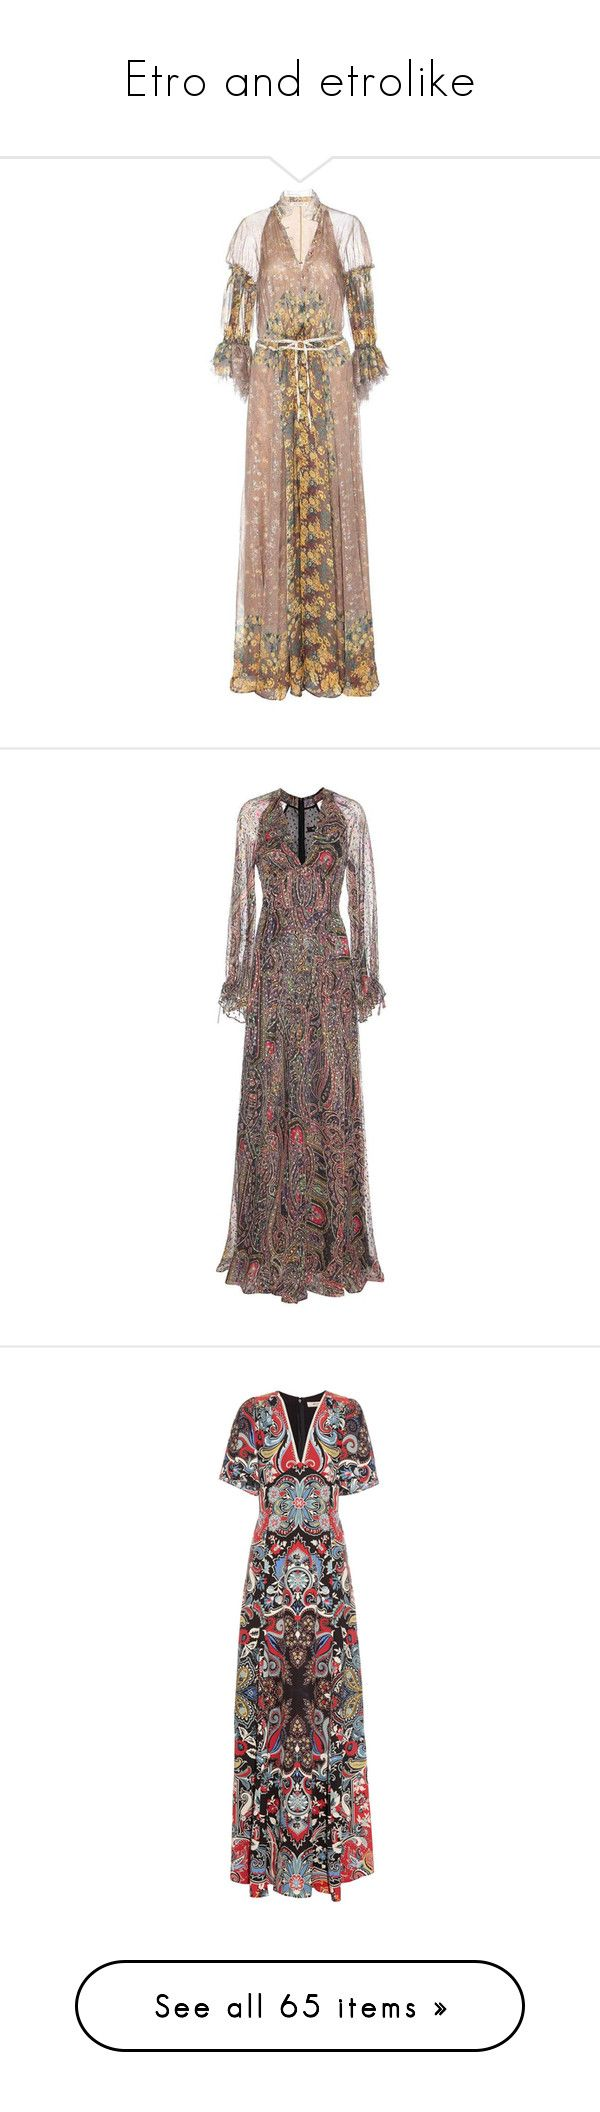 """""""Etro and etrolike"""" by lorika-borika on Polyvore featuring dresses, cocktail/gowns, multicoloured, holiday dresses, evening dresses, brown evening dress, brown cocktail dress, multicolor dresses, multi coloured dress и etro"""